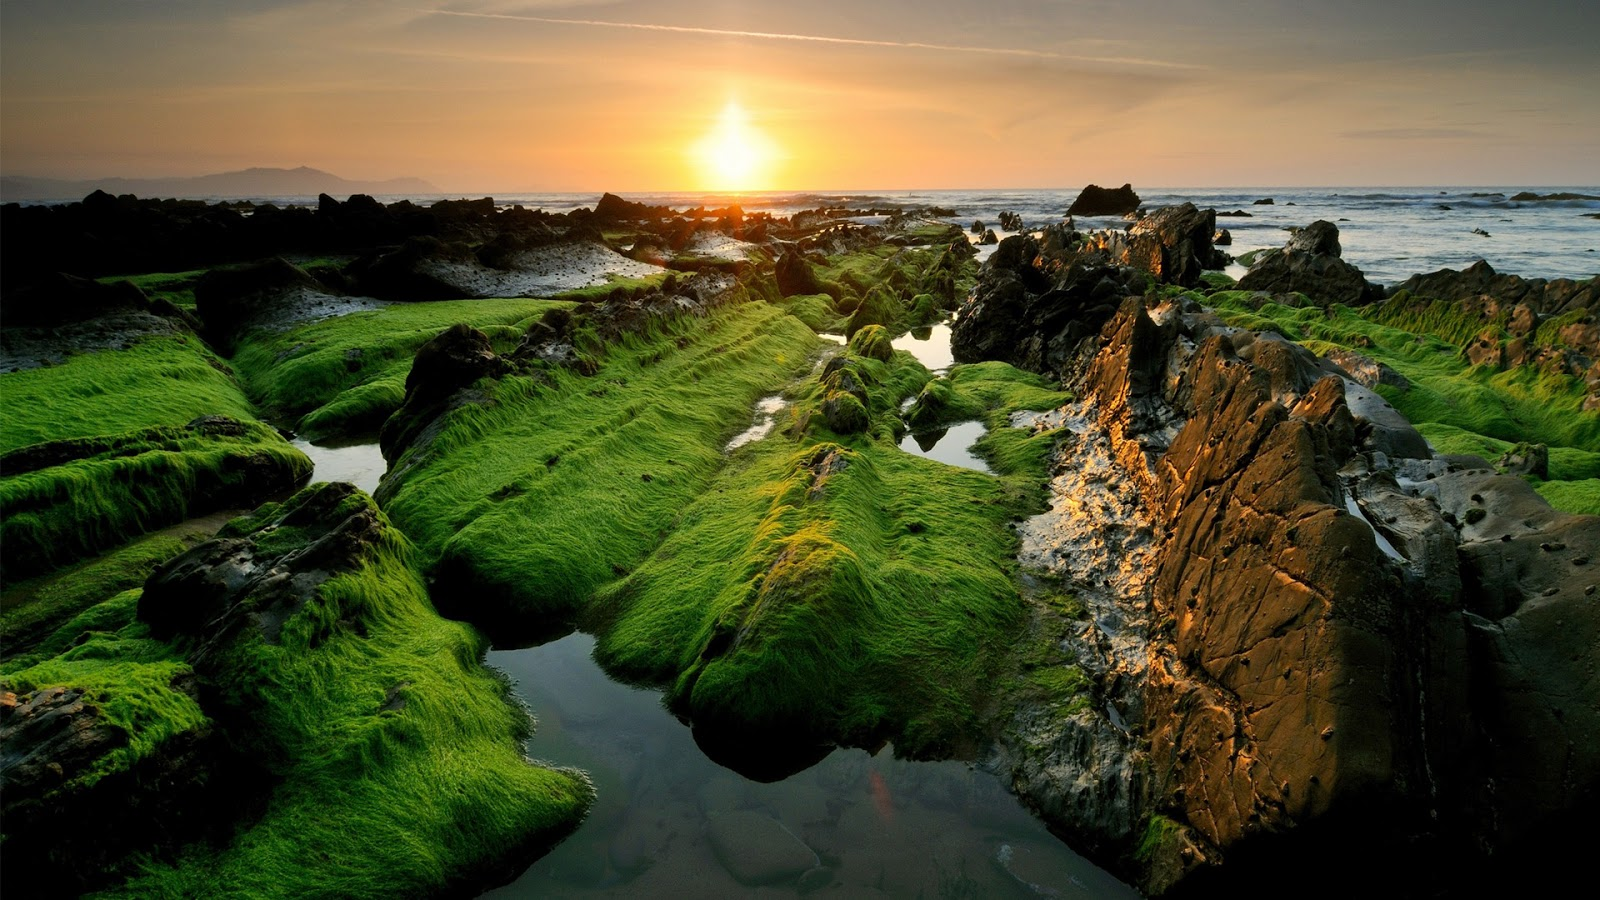 See our best stock images of landscapes, people at the beach, starry night skies, hiking in the forest, and other outdoor scenes. Landscape Photography | HD Wallpapers (High Definition ...